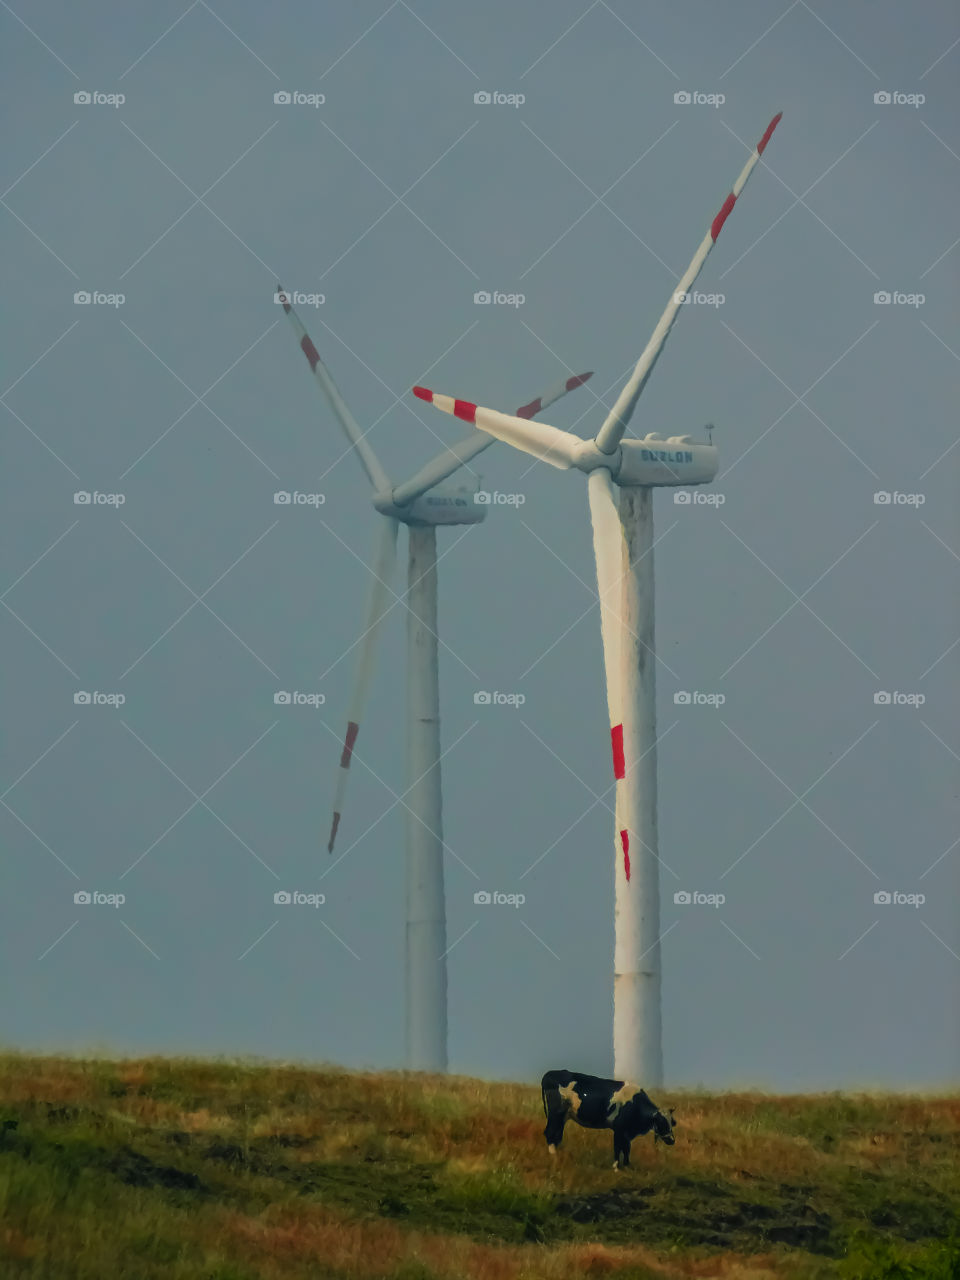 Electricity source or energy source that is skyscraper windmills on top of hill with grazing cattle.